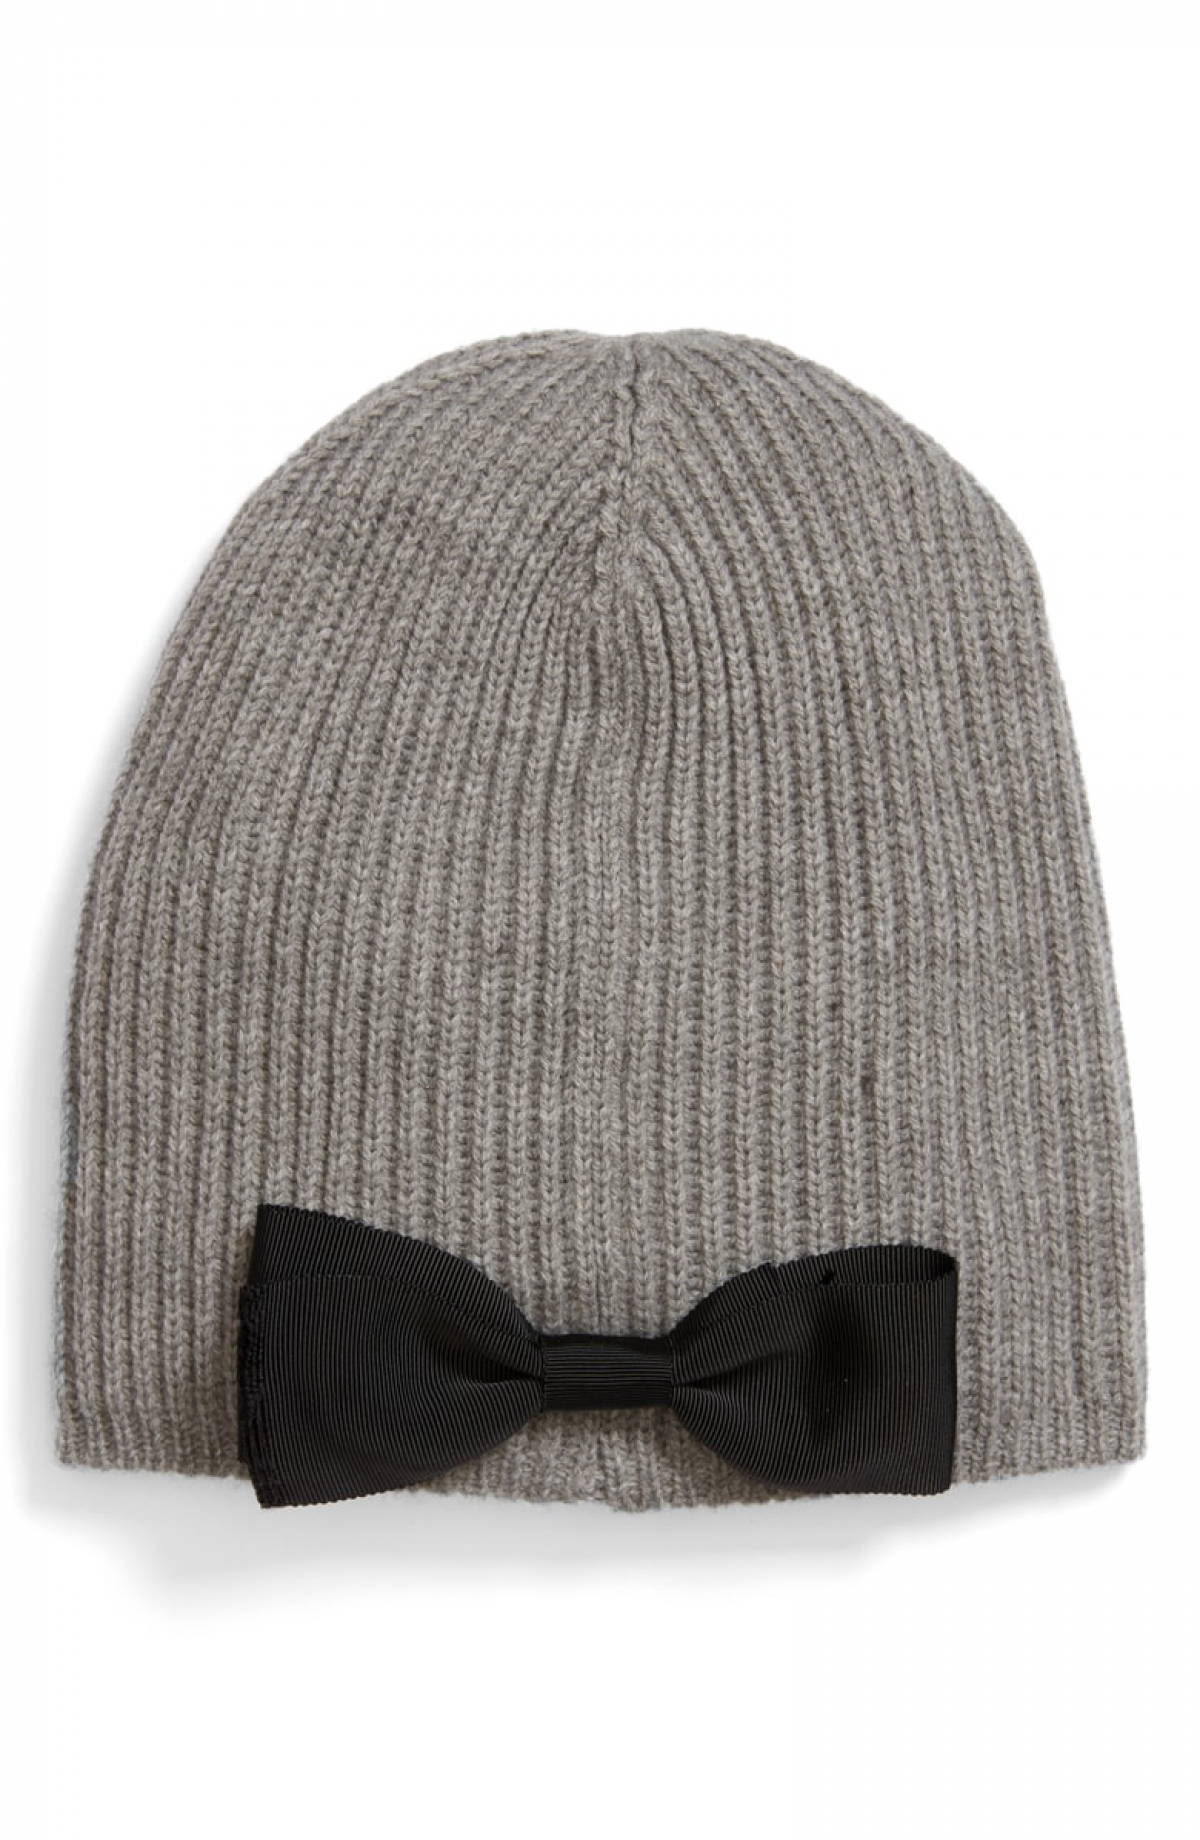 Fashion: Winter Hats That Rock!